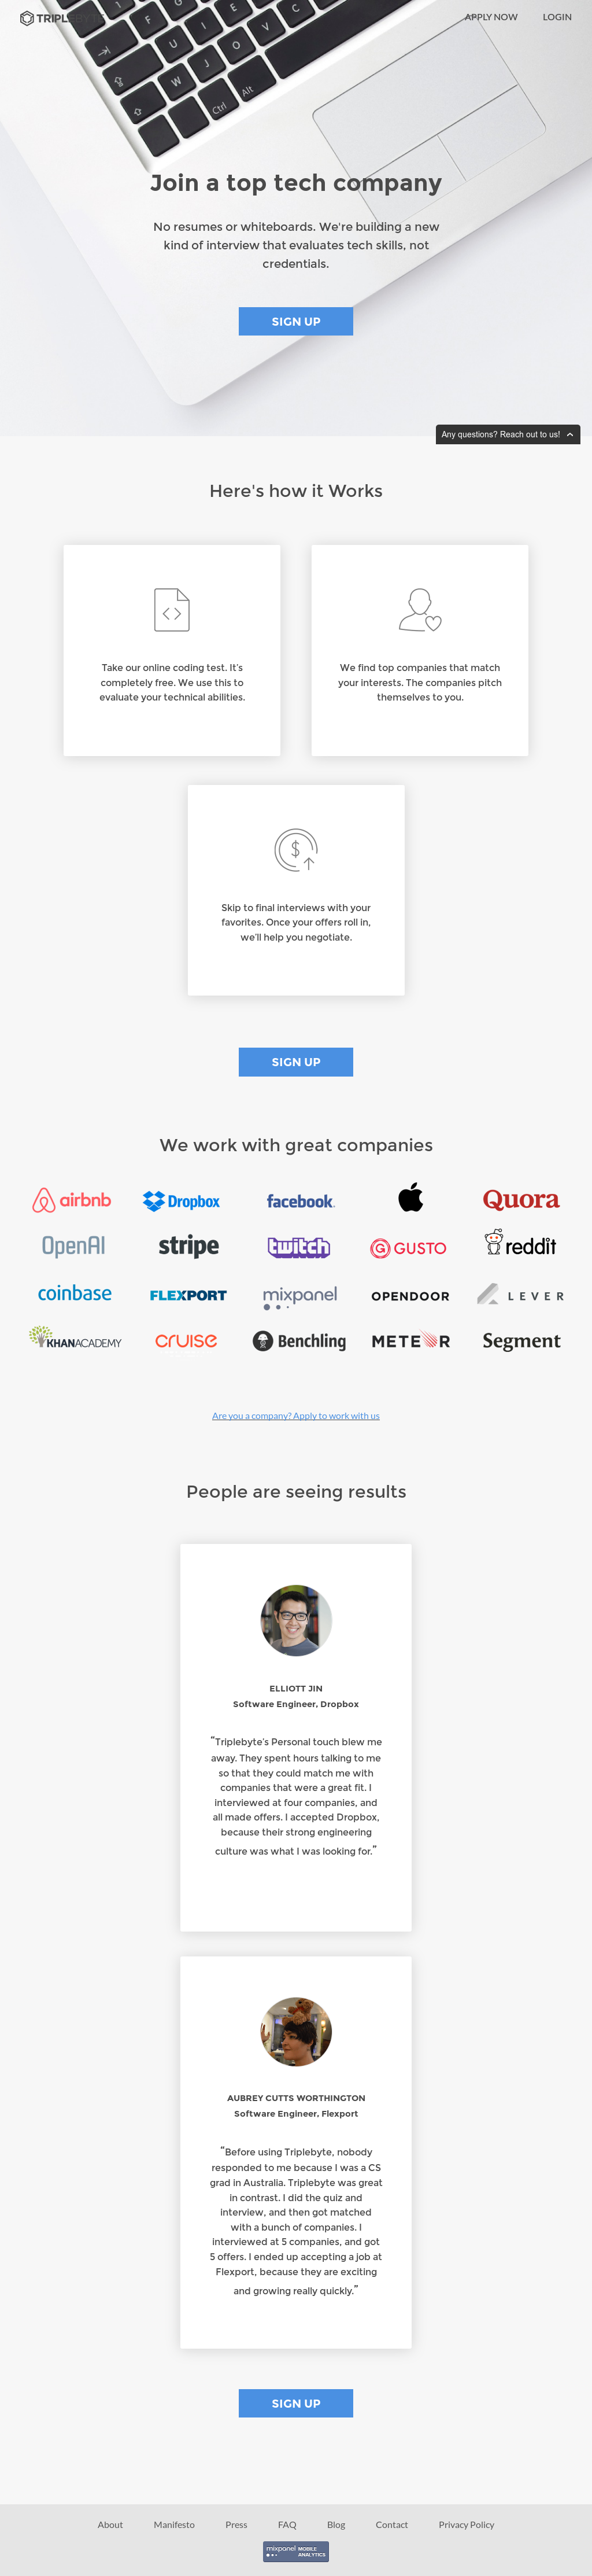 Triplebyte Competitors, Revenue and Employees - Owler